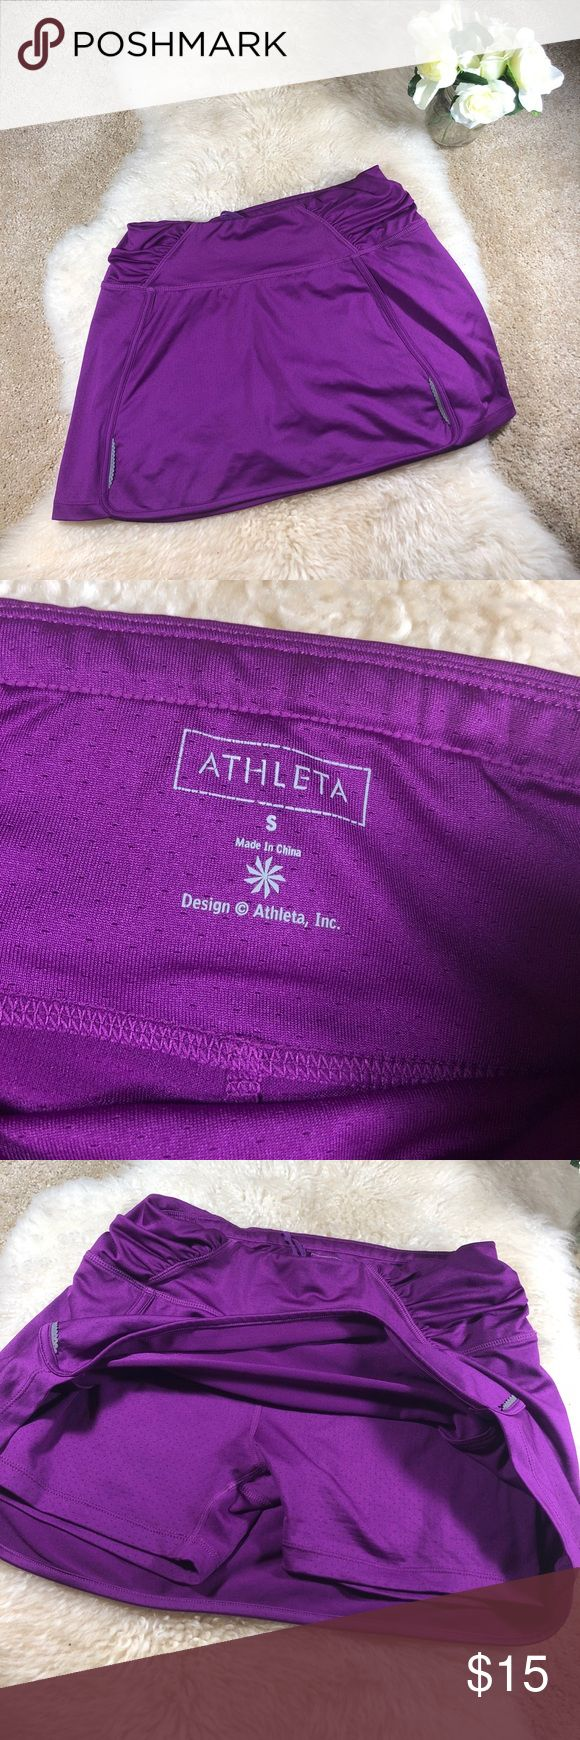 Athleta skirt with built in shorts Athleta skirt with built in shorts. Good condition. Size small. Length about 12.5 inches. Pretty purple color. Pocket in back. Bundle and save! :) Athleta Skirts Mini